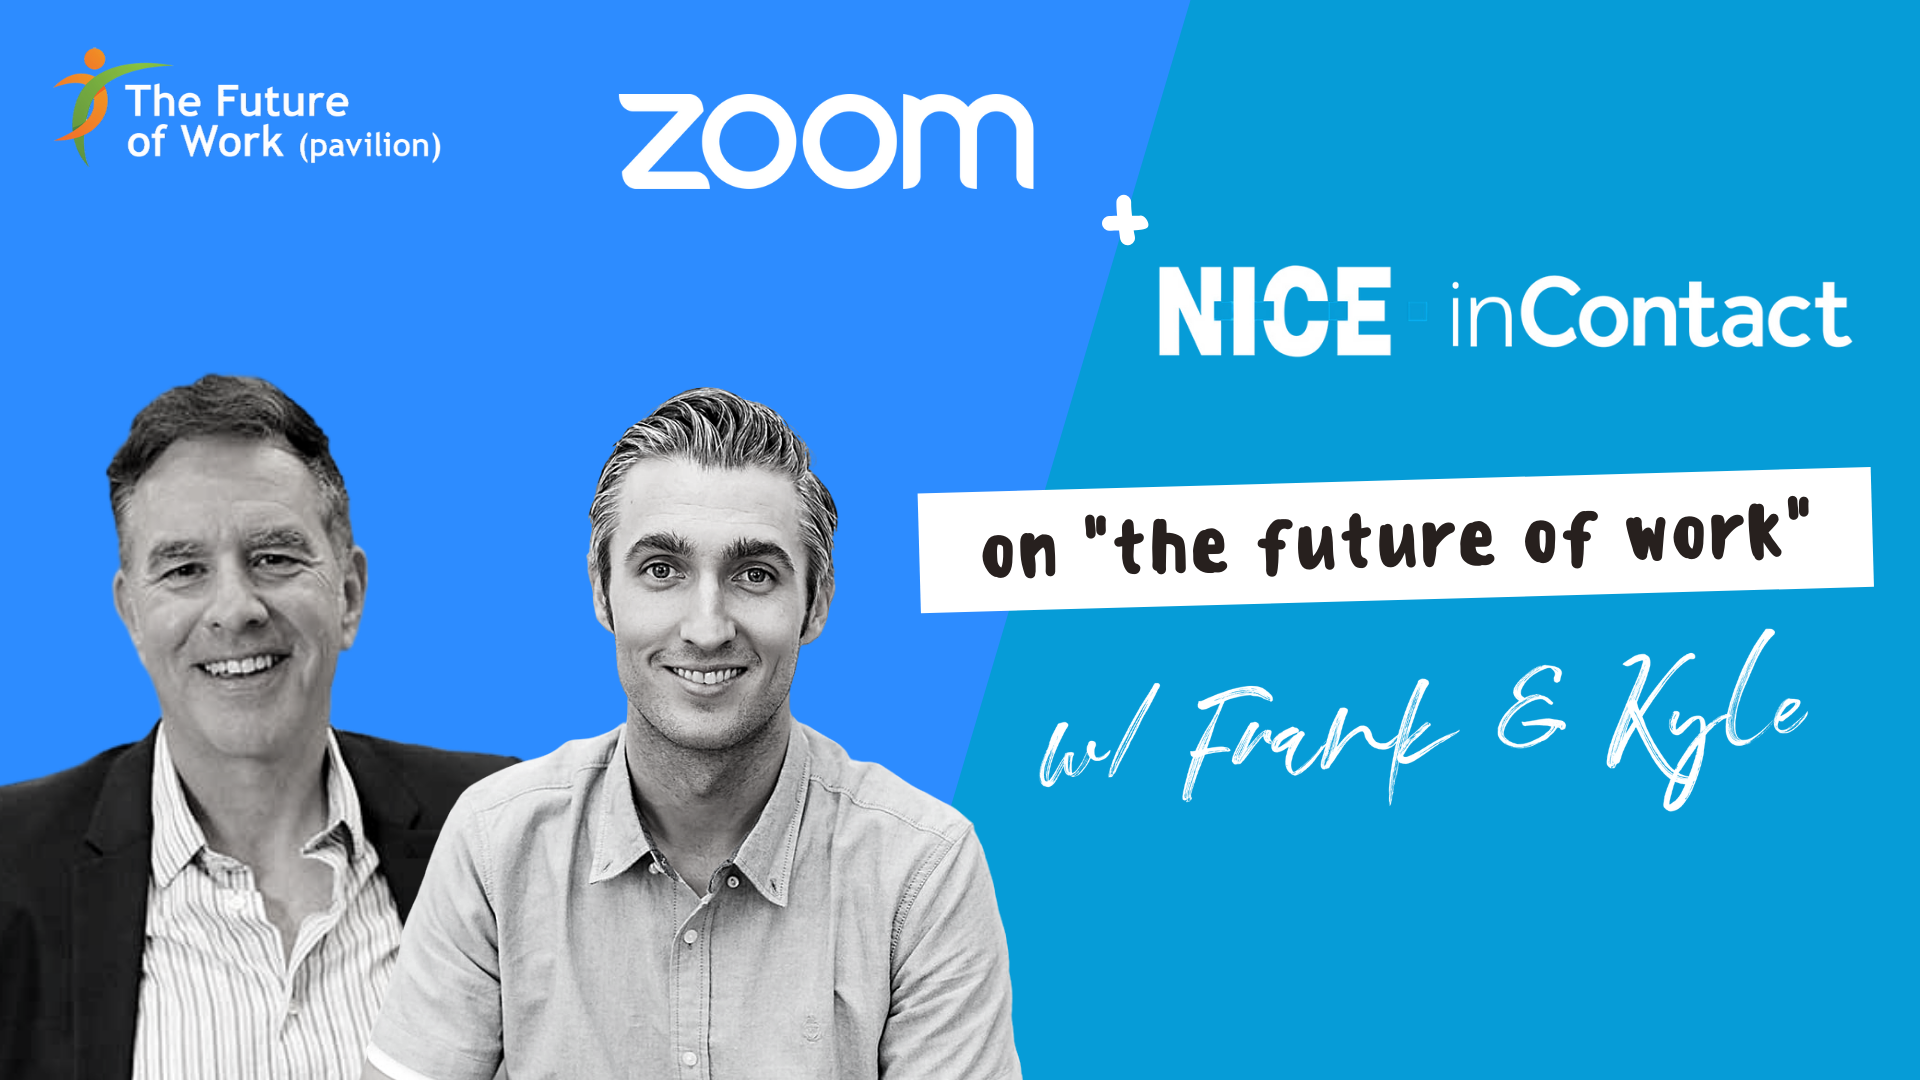 Zoom + NICE InContact on Synergistic Partnerships in the Future of Work